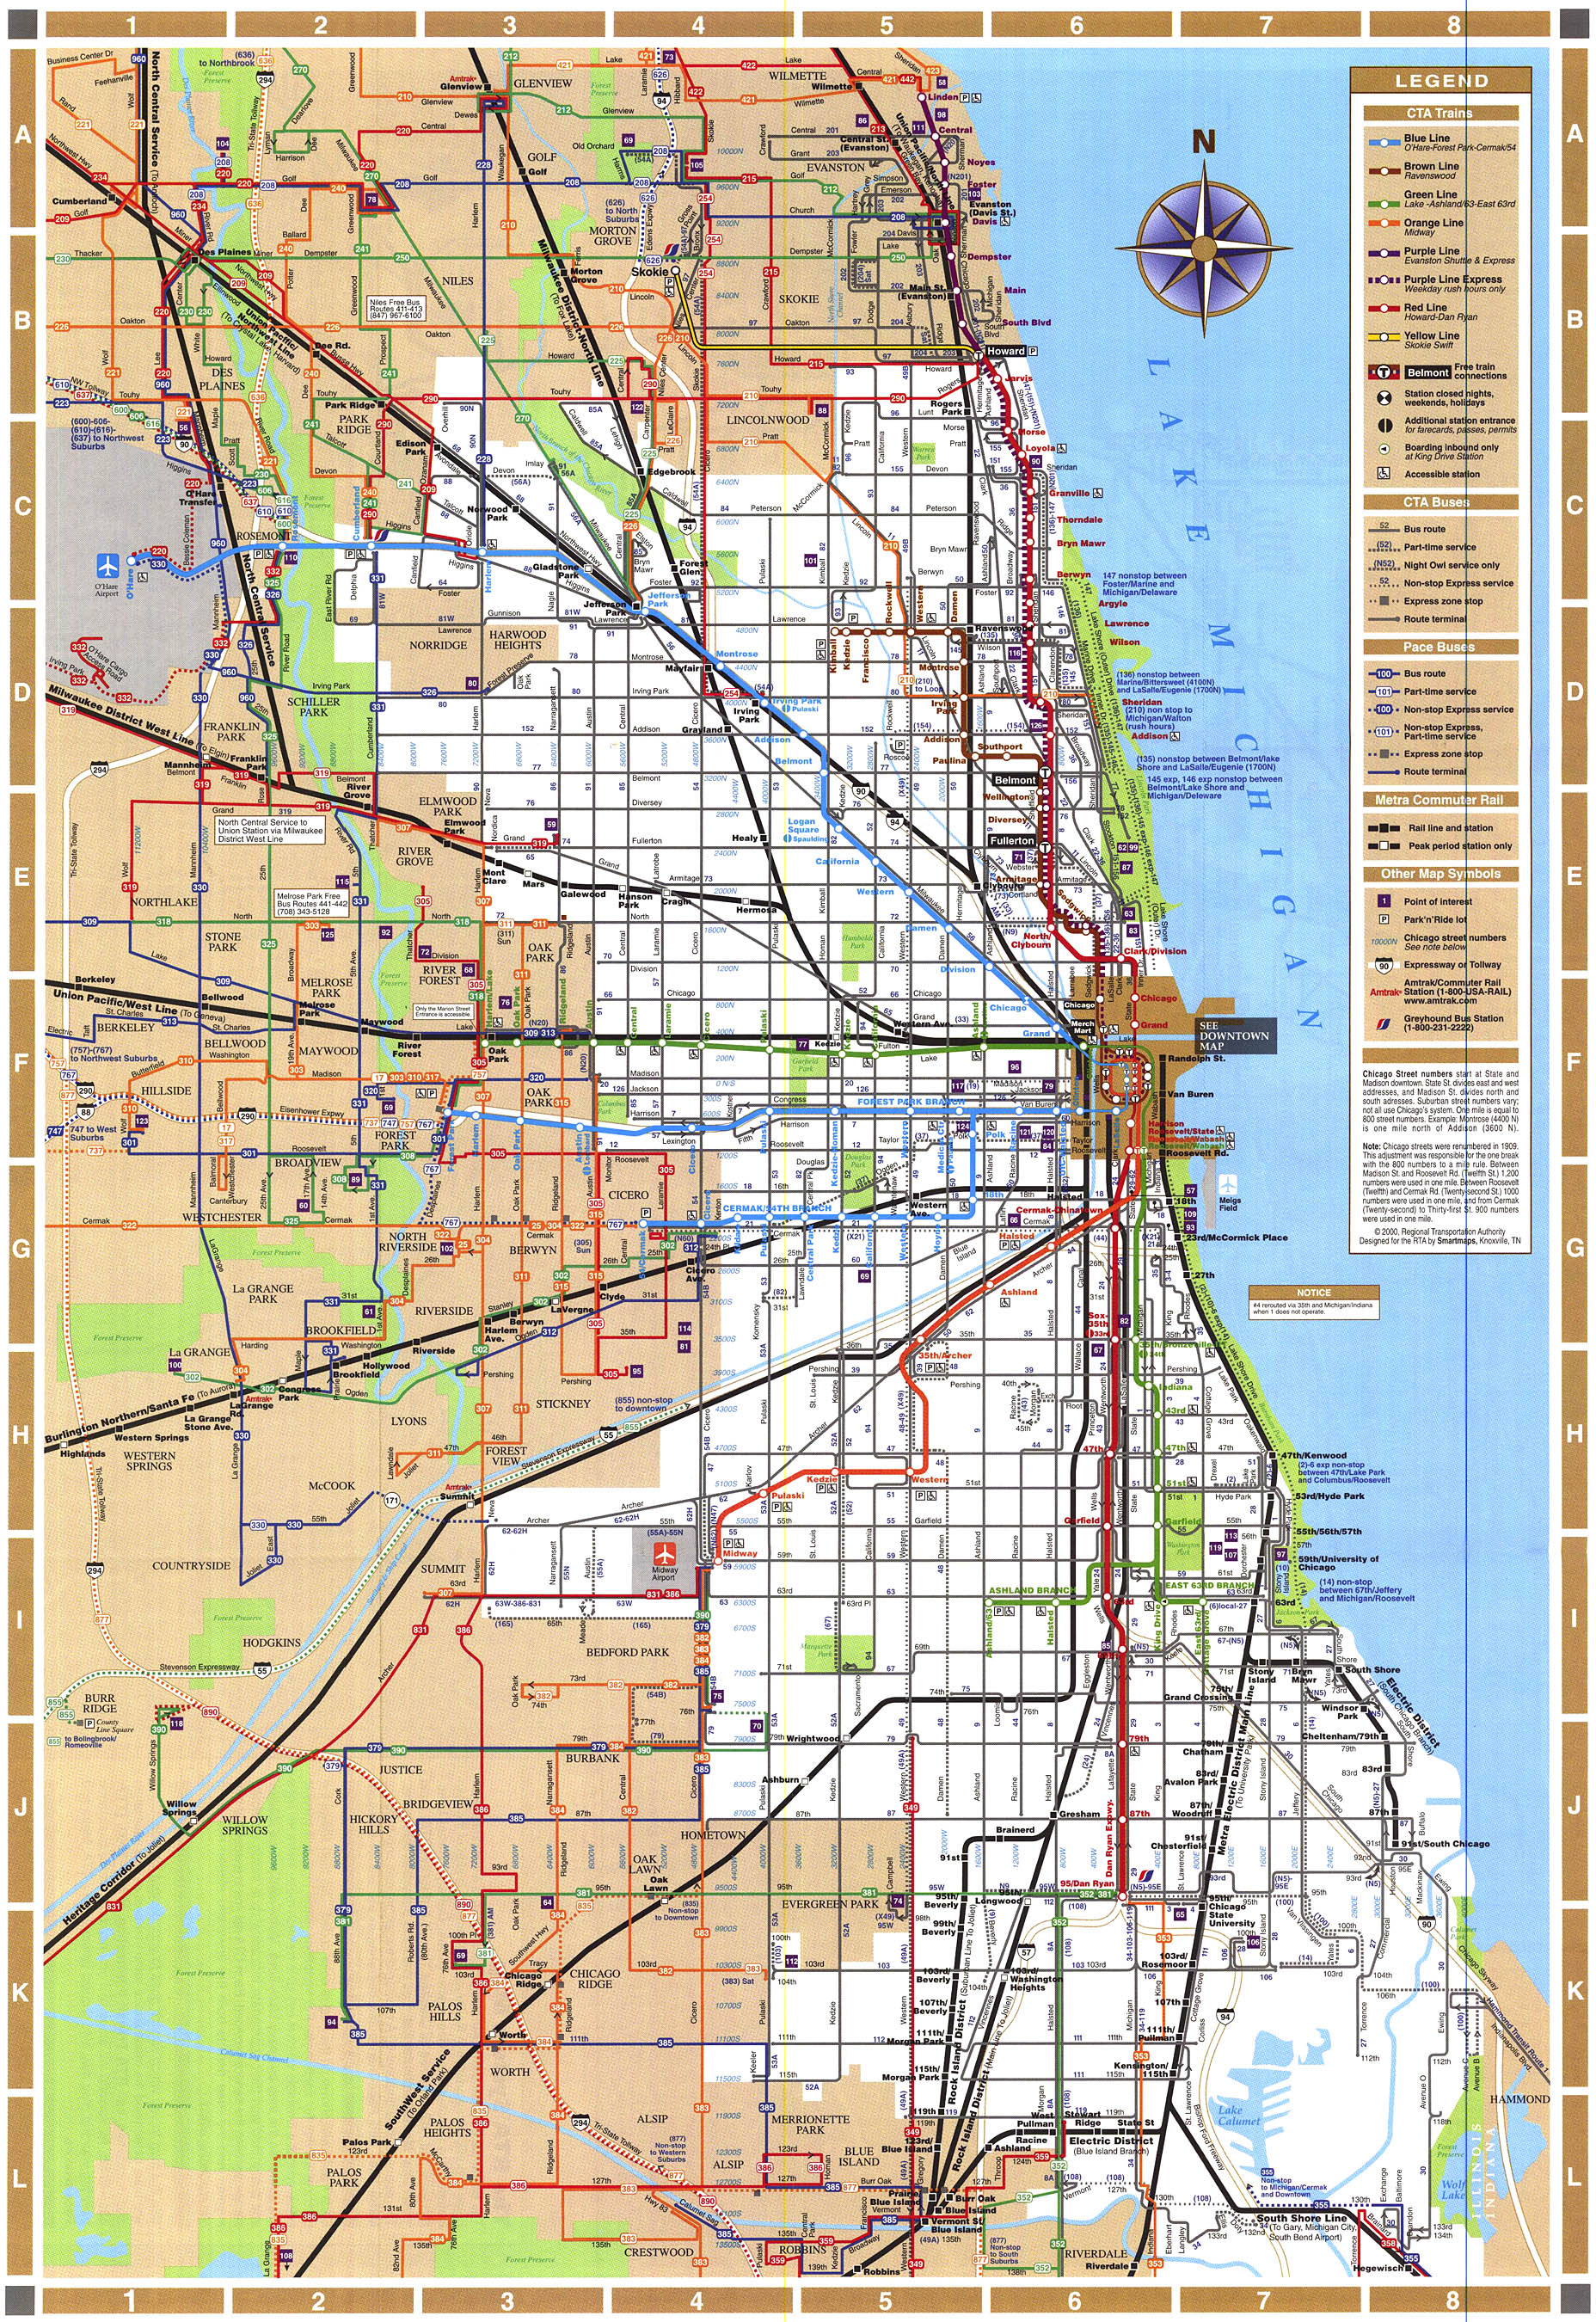 Chicago Train Map - Chicago Illinois • mappery on metro detroit, cook county, map of st peters mo, map of new orleans la, map of durham nc, lake county, map of alexandria va, map of bountiful ut, oak park, map of indiana in, map of phoenix az, phoenix metropolitan area, chicago loop, map of long island city ny, map of white bear lake mn, map of ithaca ny, map of new york city ny, new york metropolitan area, map of chicagoland area and suburbs, greater los angeles area, map of montreal canada, delaware valley, map of carolina pr, will county, map of illinois, map of memphis tn, kane county, map of salt lake city ut, map of pocatello id, dekalb county, dupage county, map of honolulu hi, map of nashville tn,